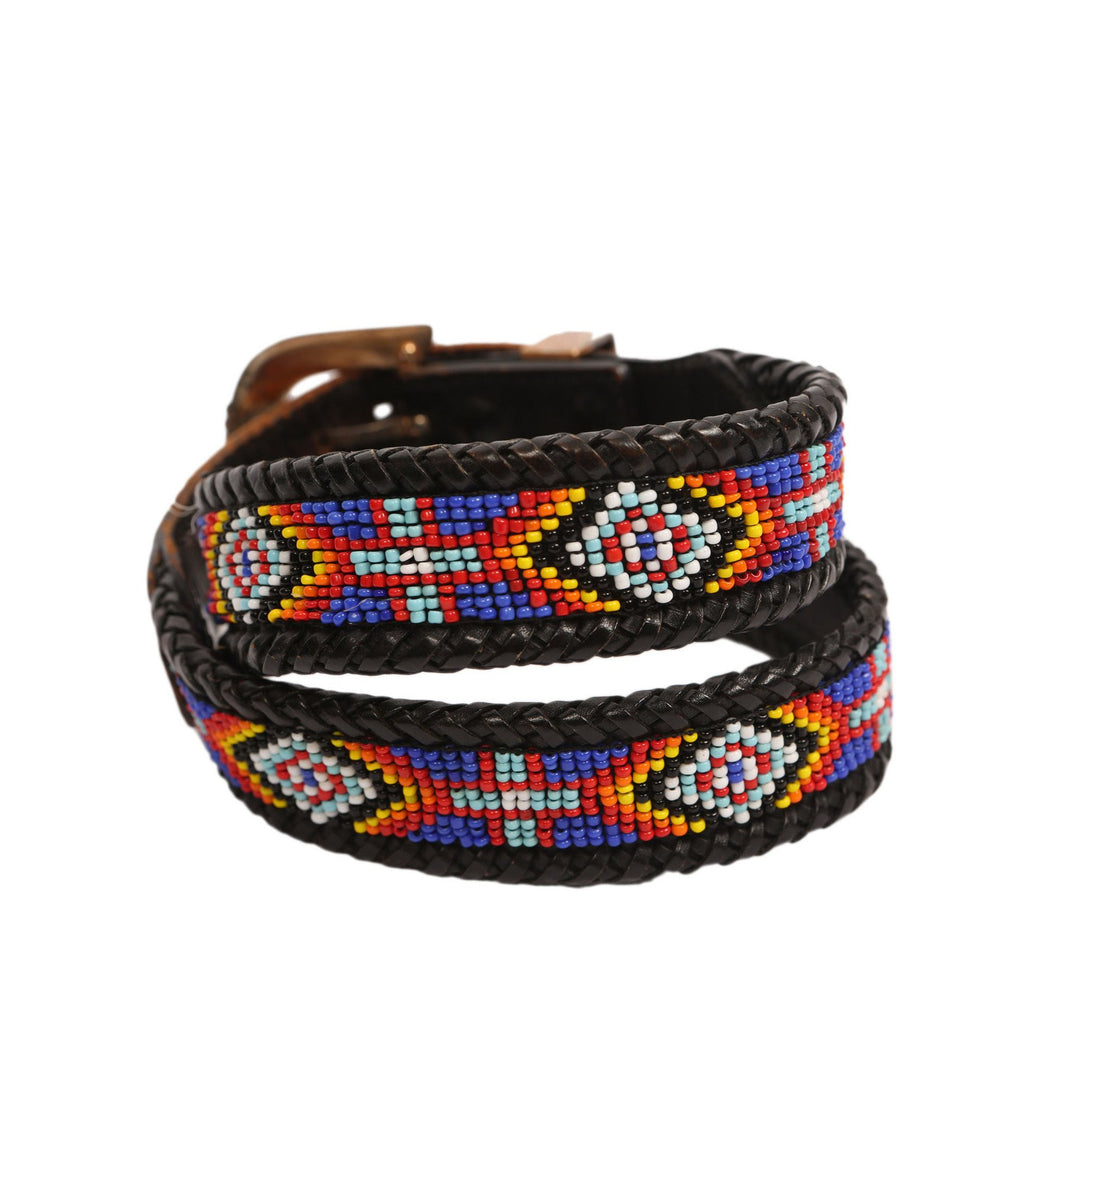 Vintage Black Leather Navajo Beaded Belt - Vintage: Other - Iron and Resin